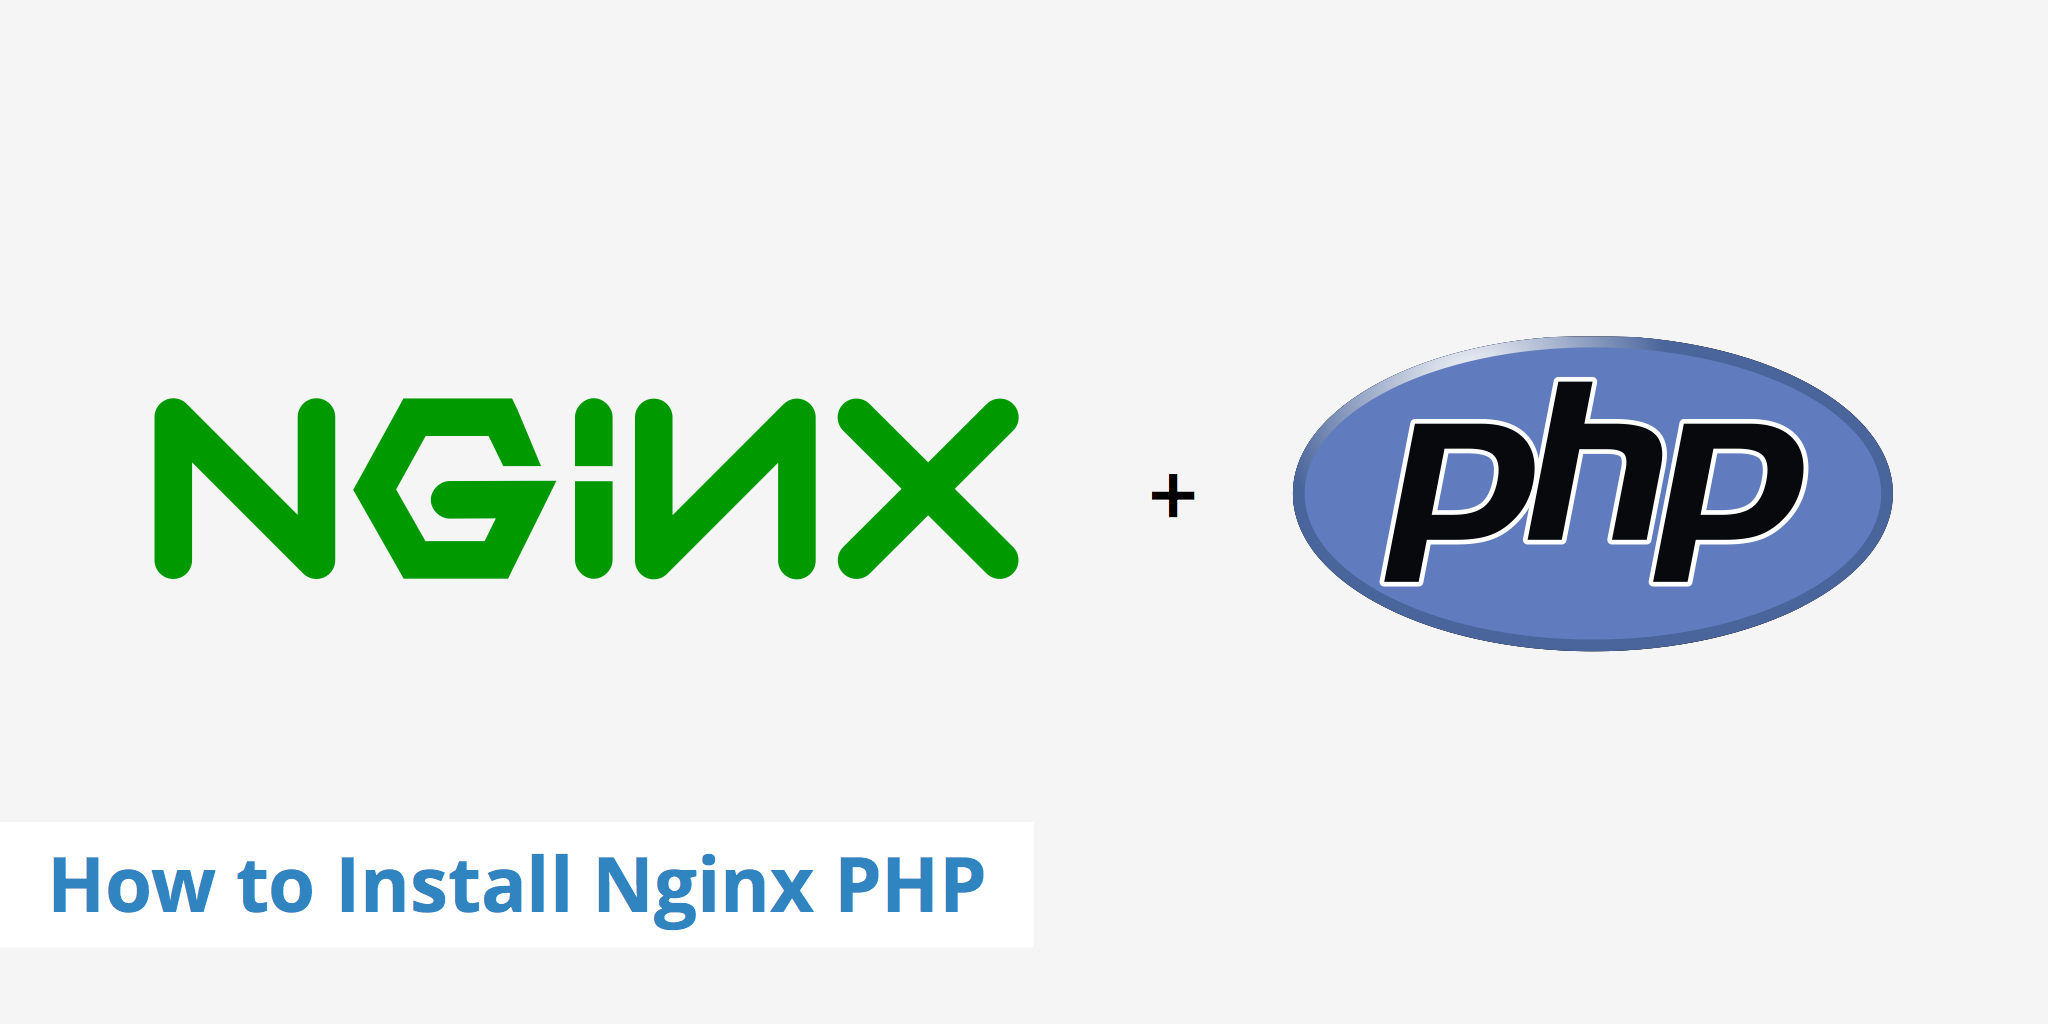 How to install Nginx PHP